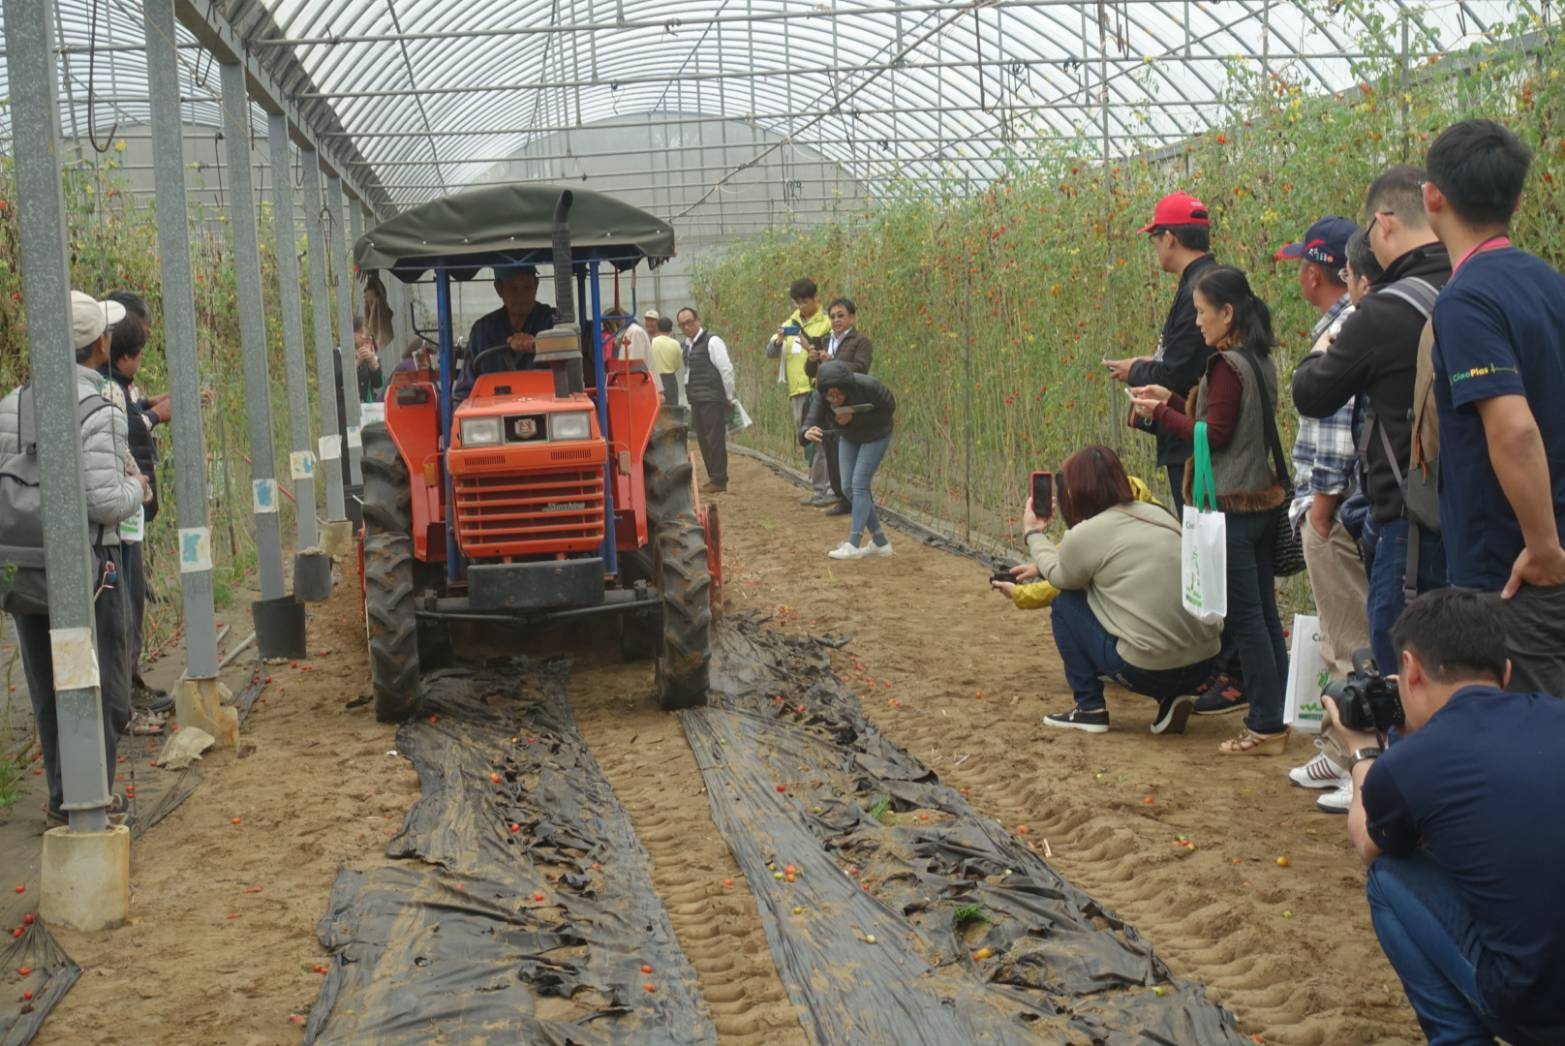 A farmer demonstrated the process of tilling the biodegradable agricultural film into the soil after harvest.